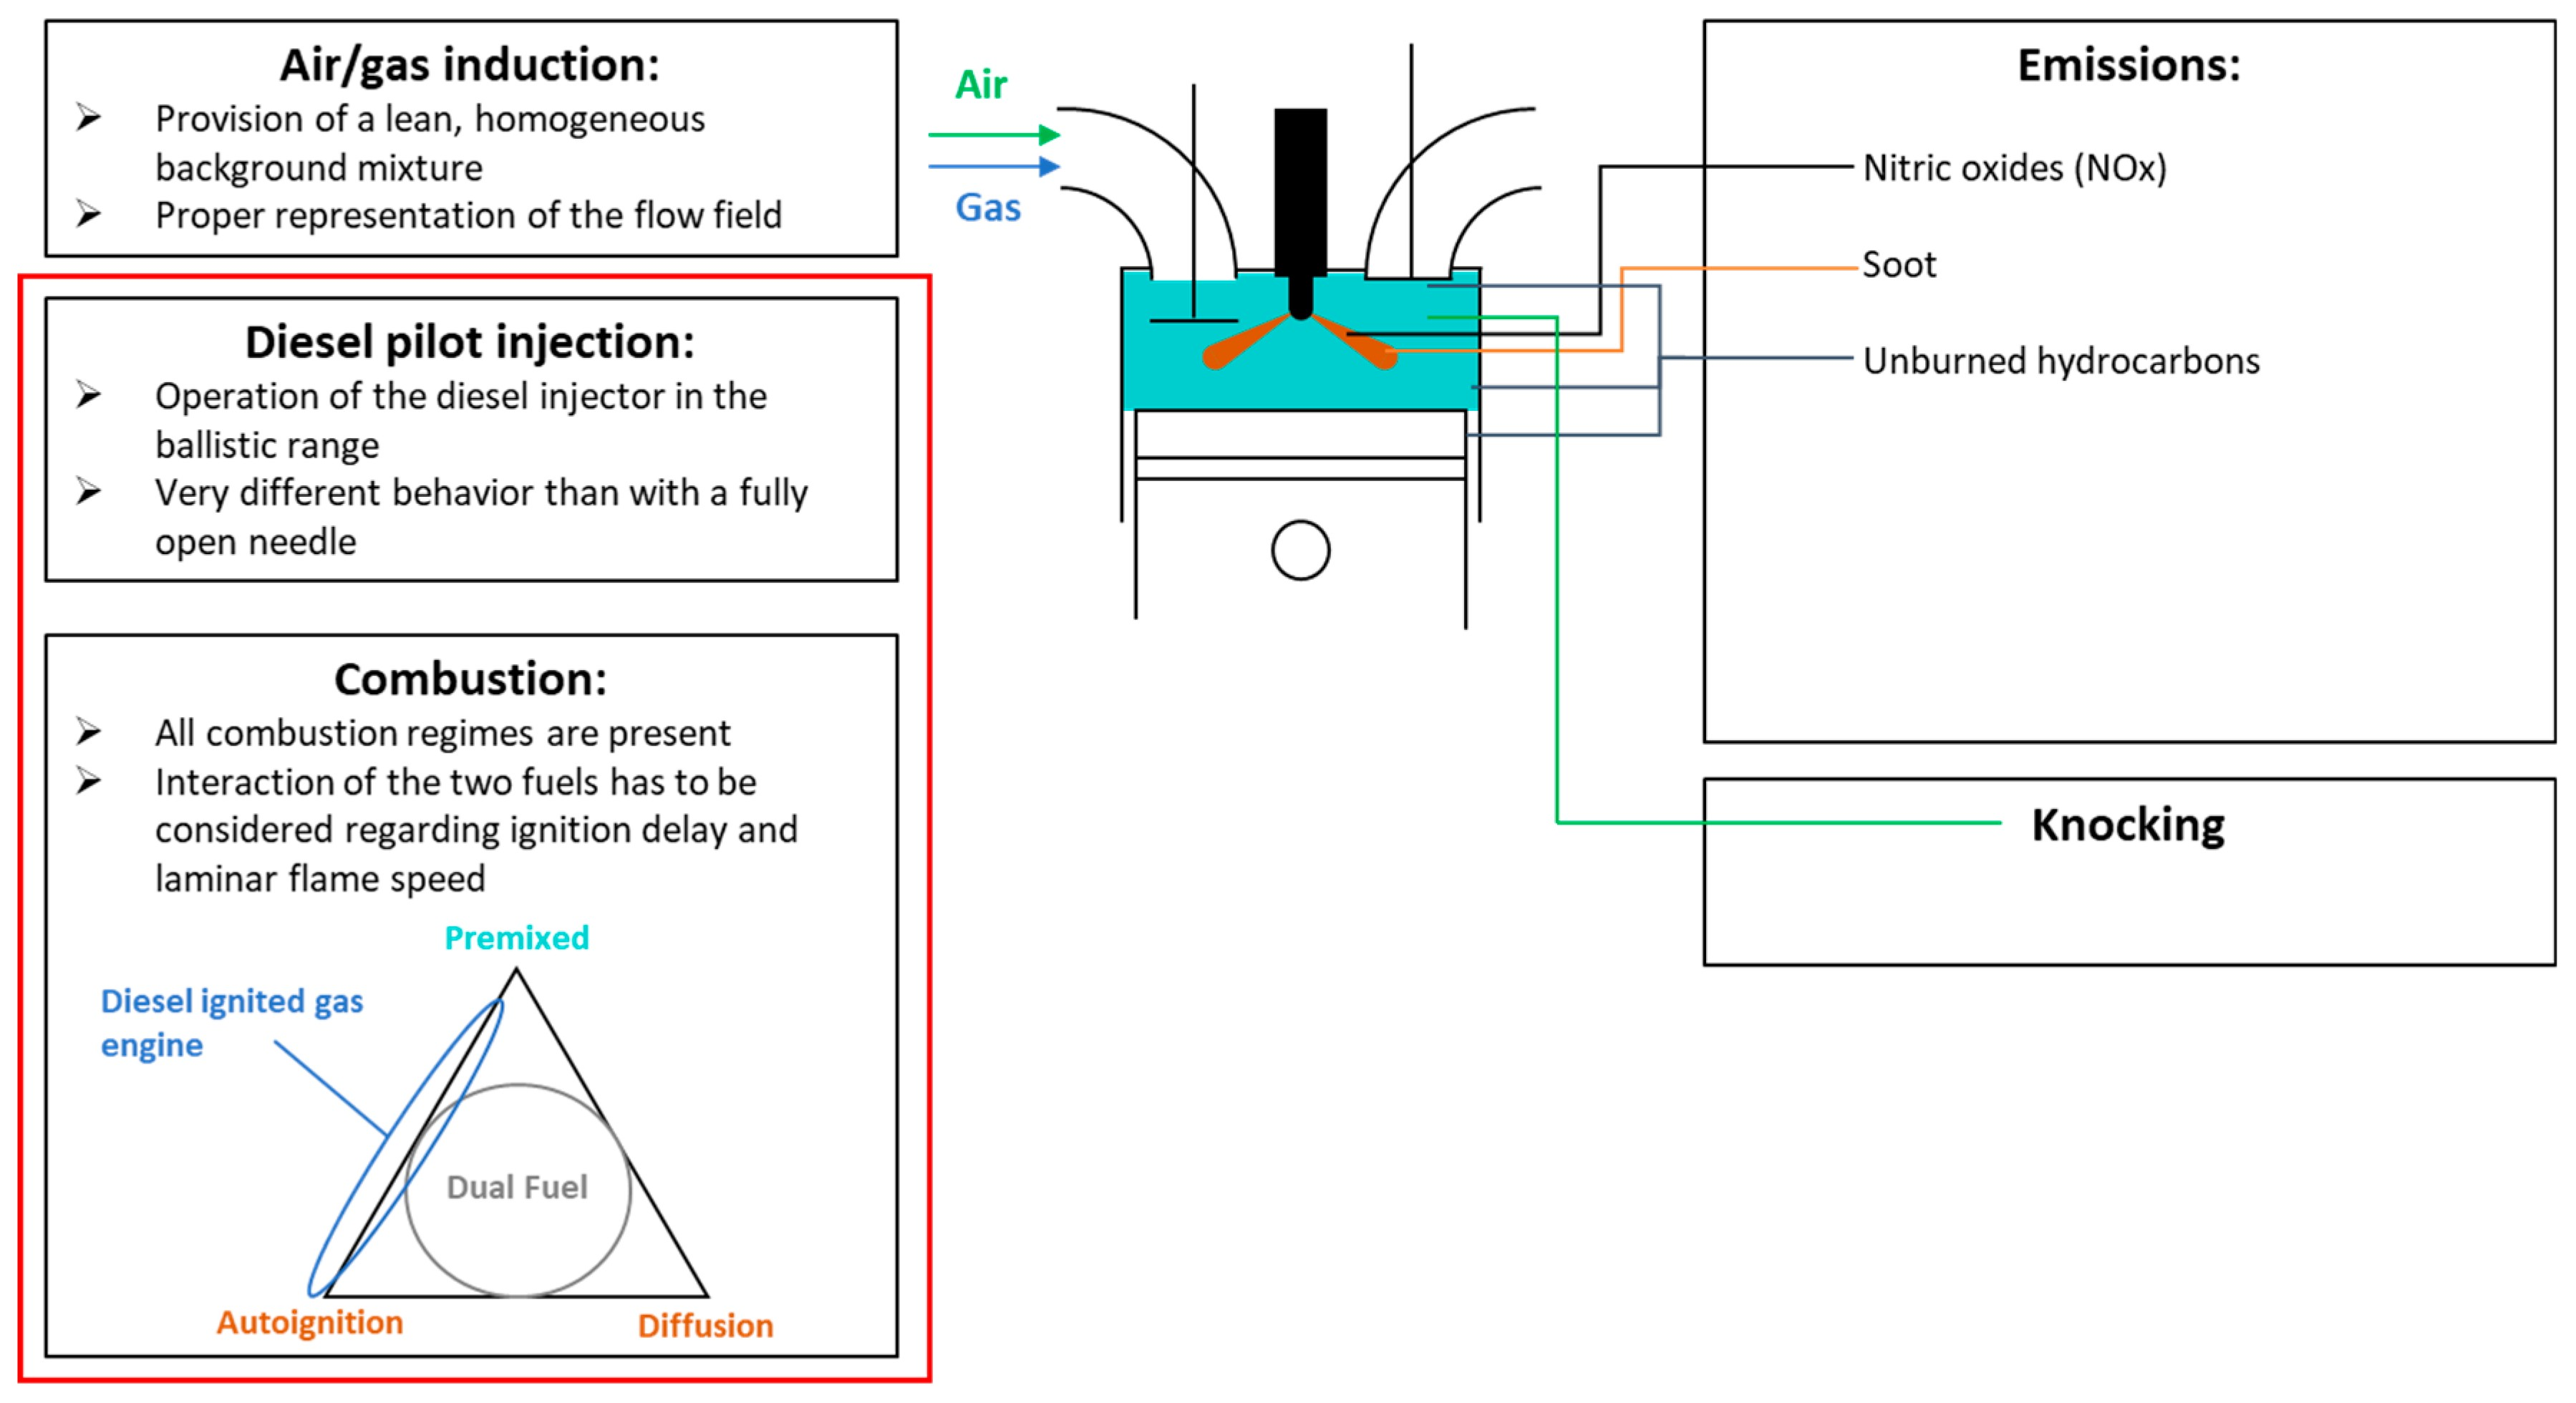 Main Engine Lube Oil System Diagram Energies Free Full Text Of Main Engine Lube Oil System Diagram